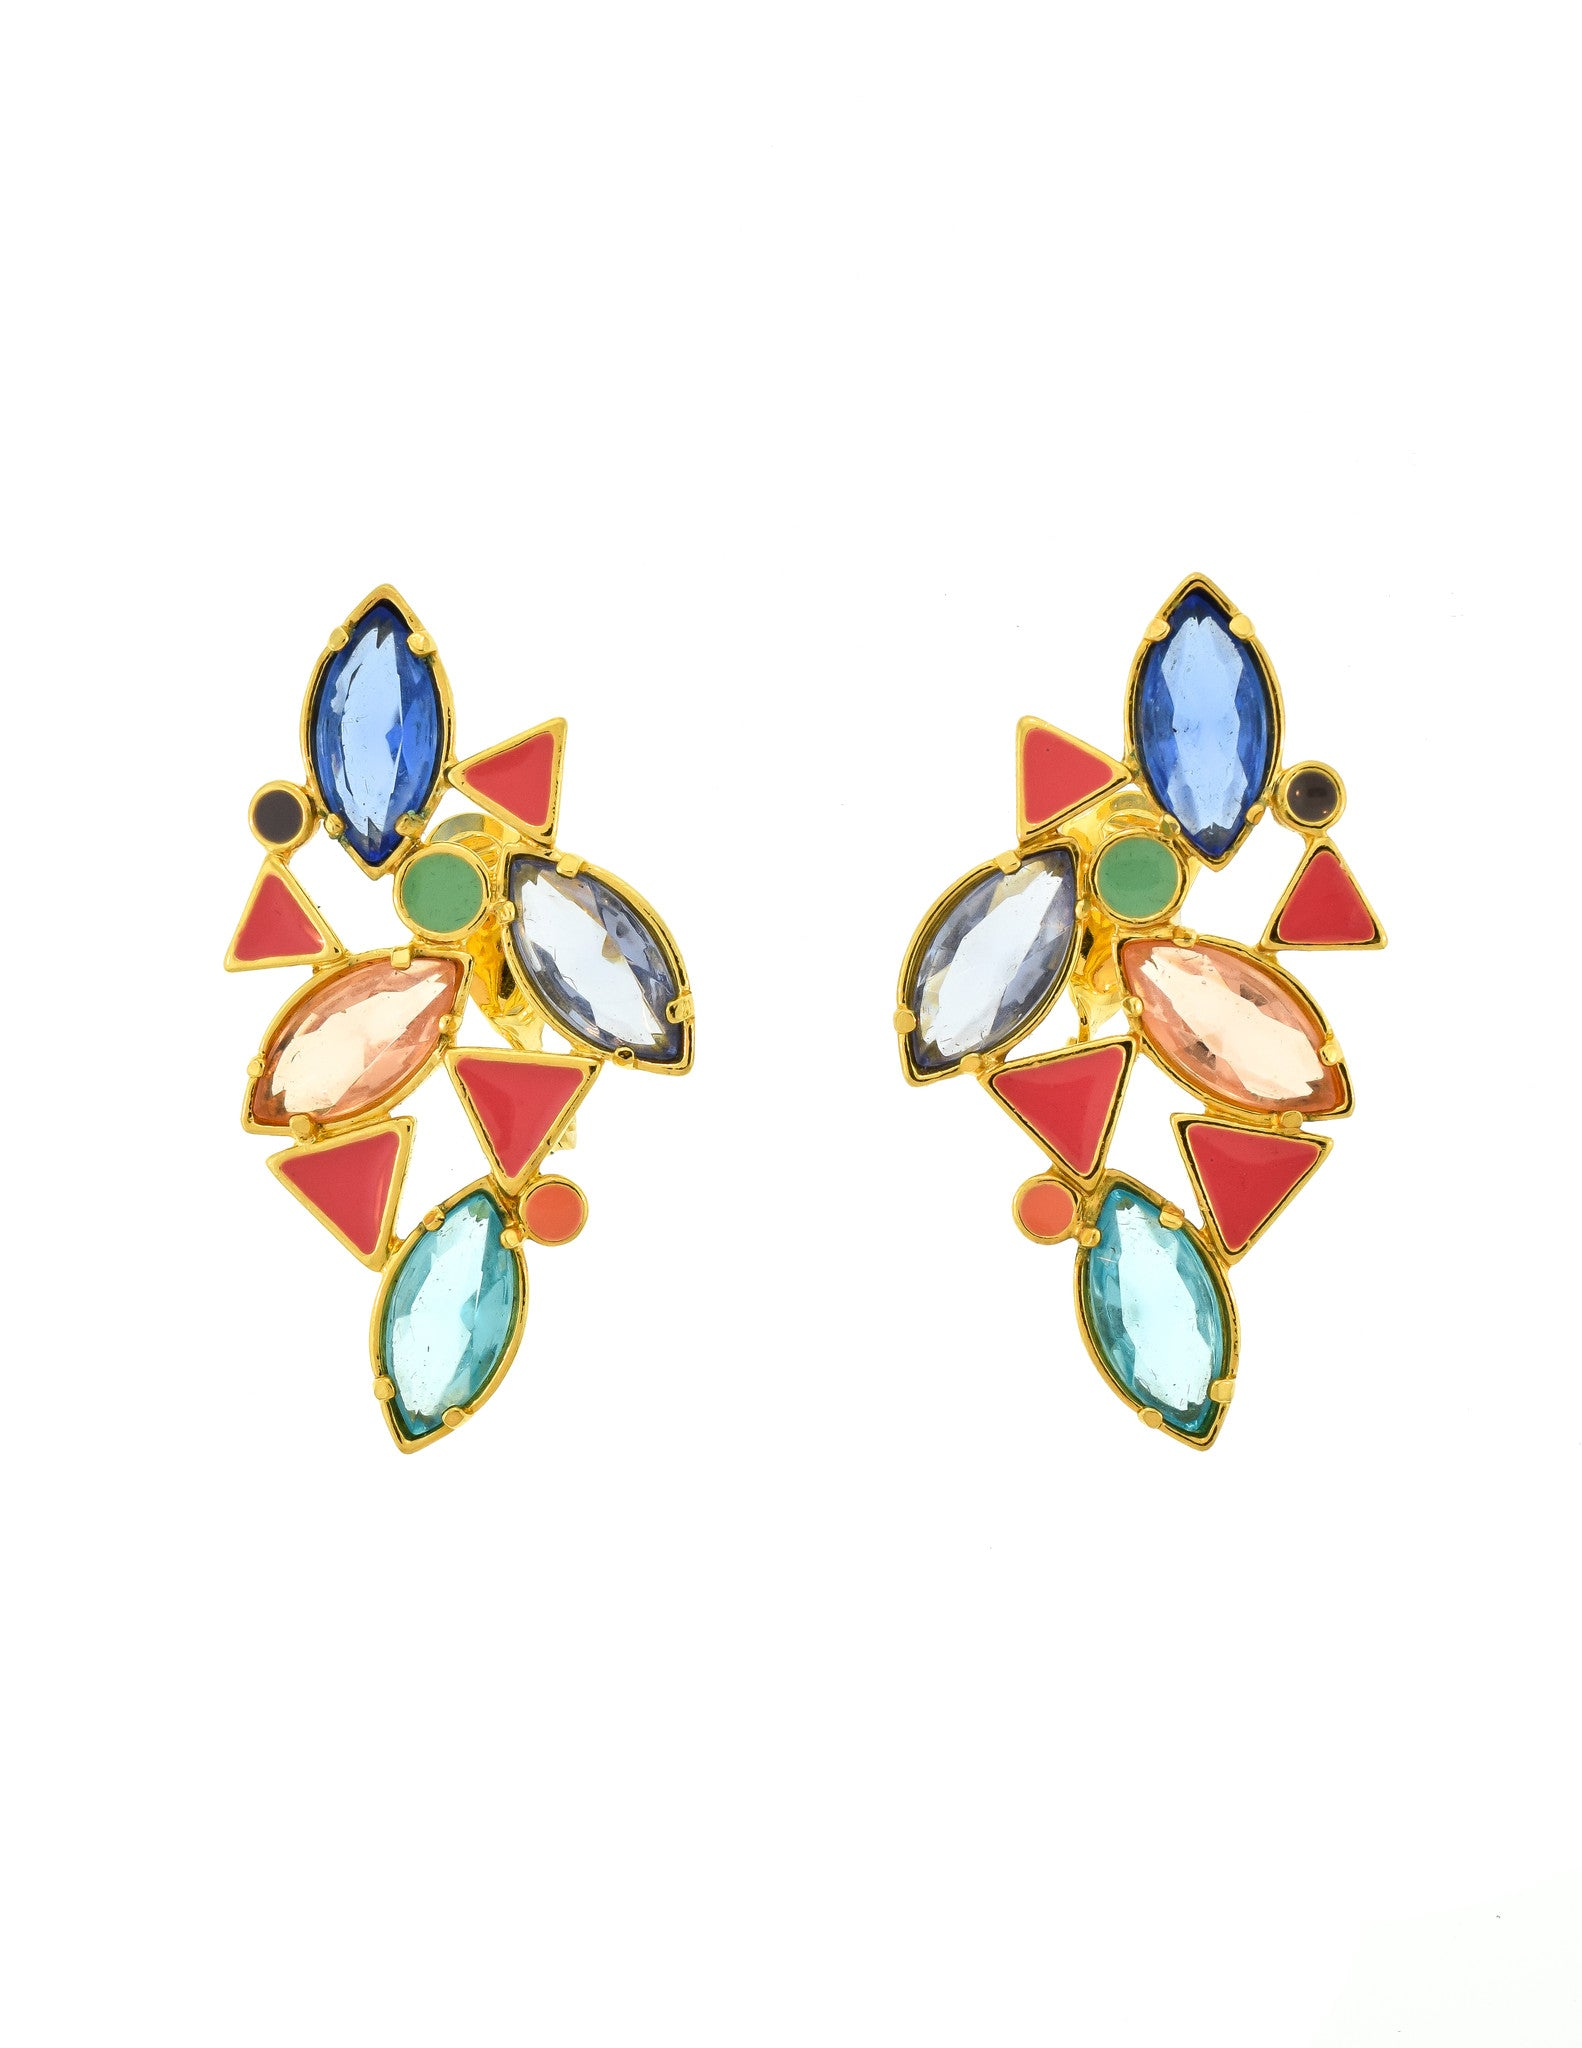 YSL Vintage Multicolor Enamel Rhinestone Geometric Earrings - Amarcord Vintage Fashion  - 1